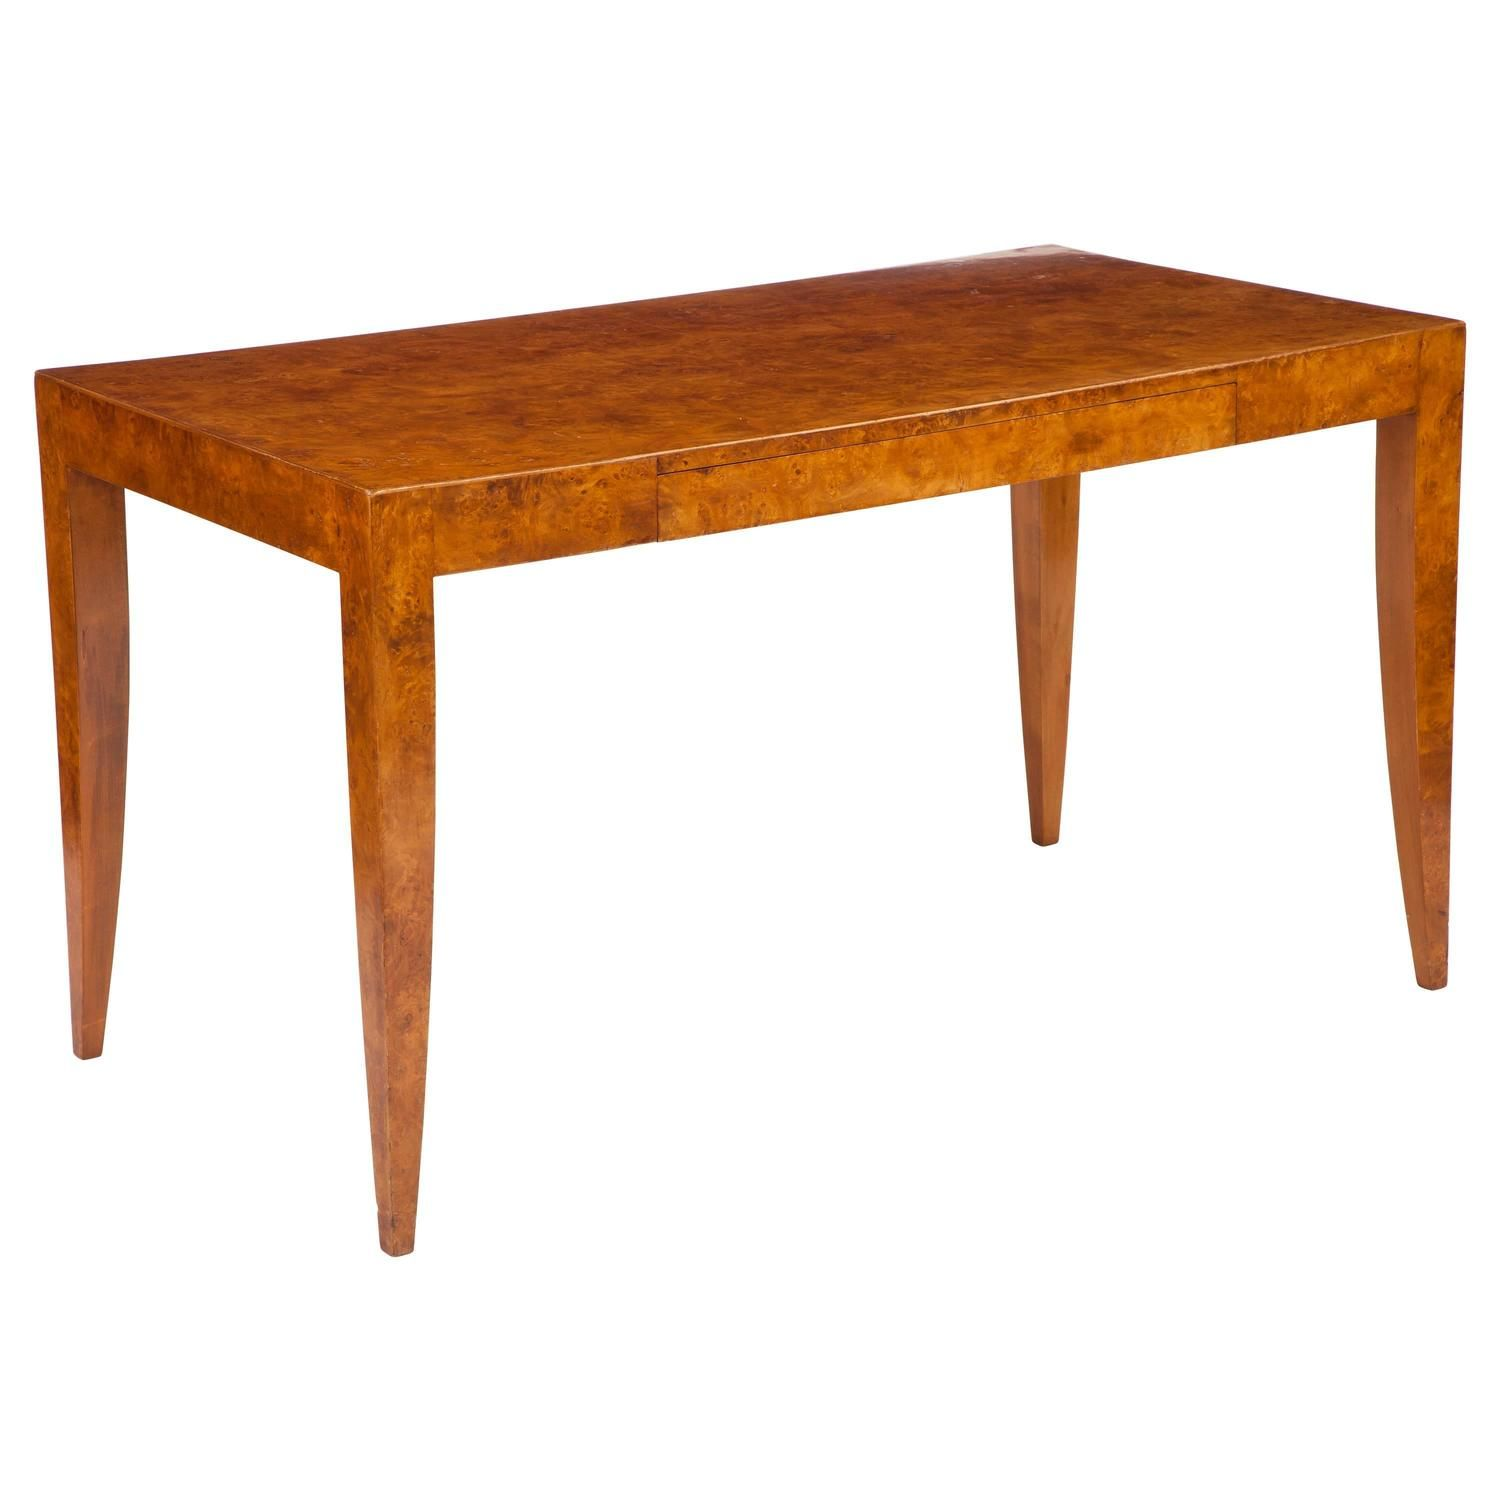 0d25f377786f36c53fc5eb106bf286d7 Top Result 50 Fresh Burl Wood Coffee Table Picture 2017 Zzt4